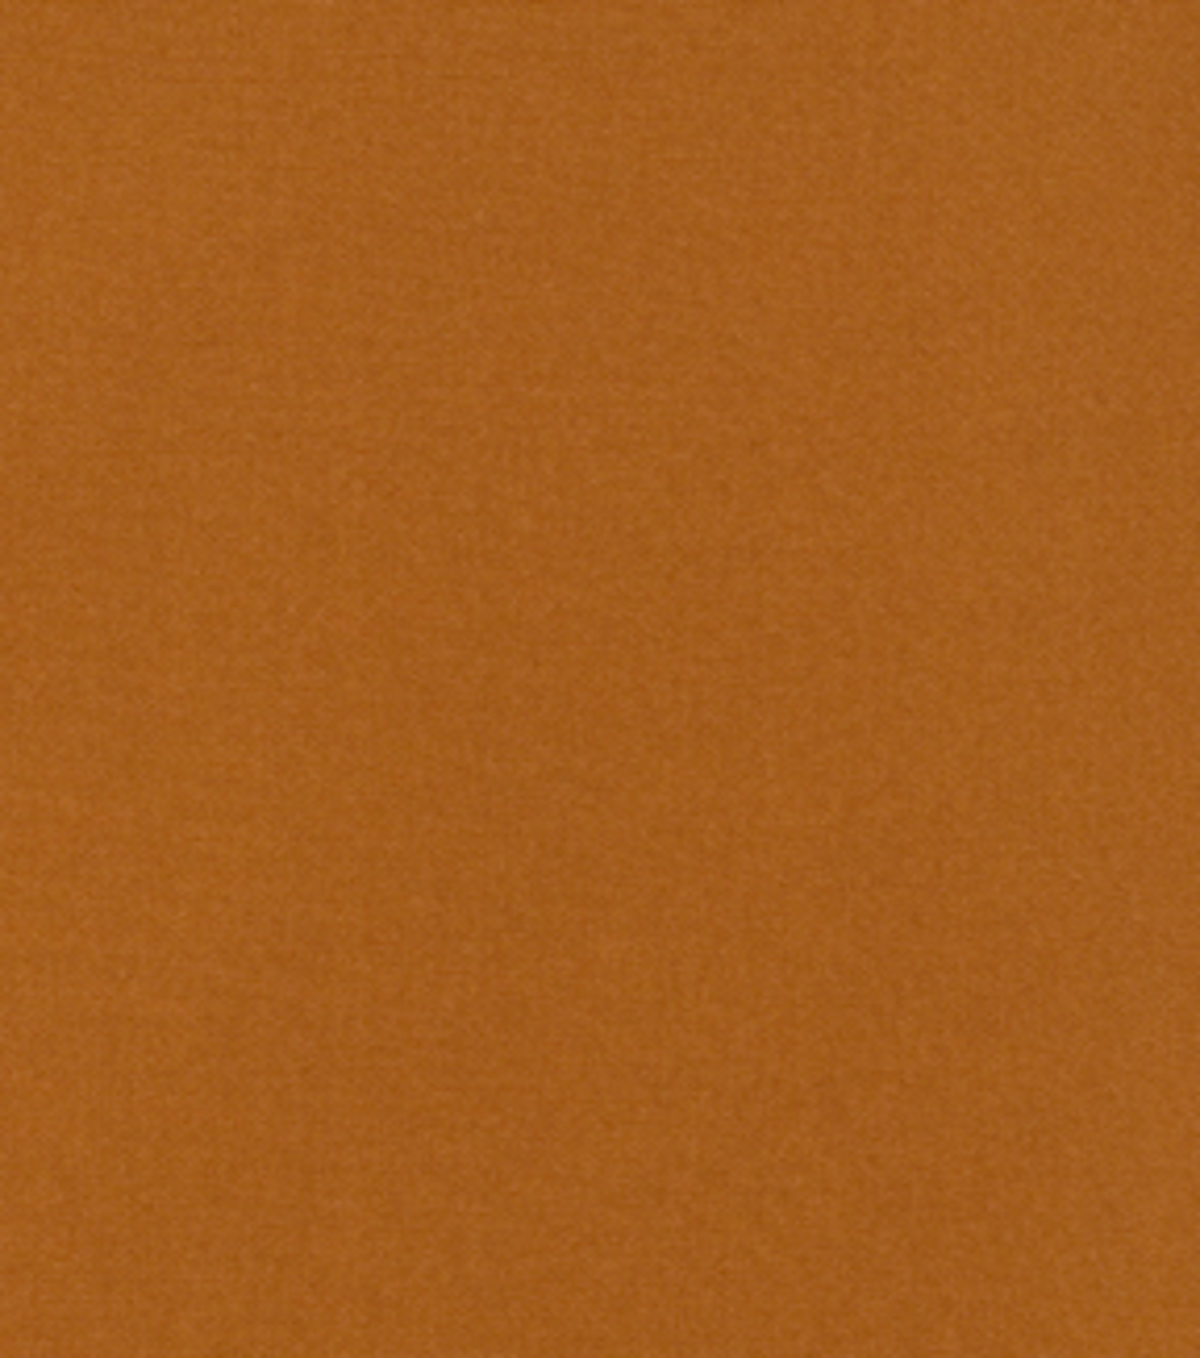 Home Decor 8\u0022x8\u0022 Fabric Swatch-Signature Series Ultra Taffeta Copper